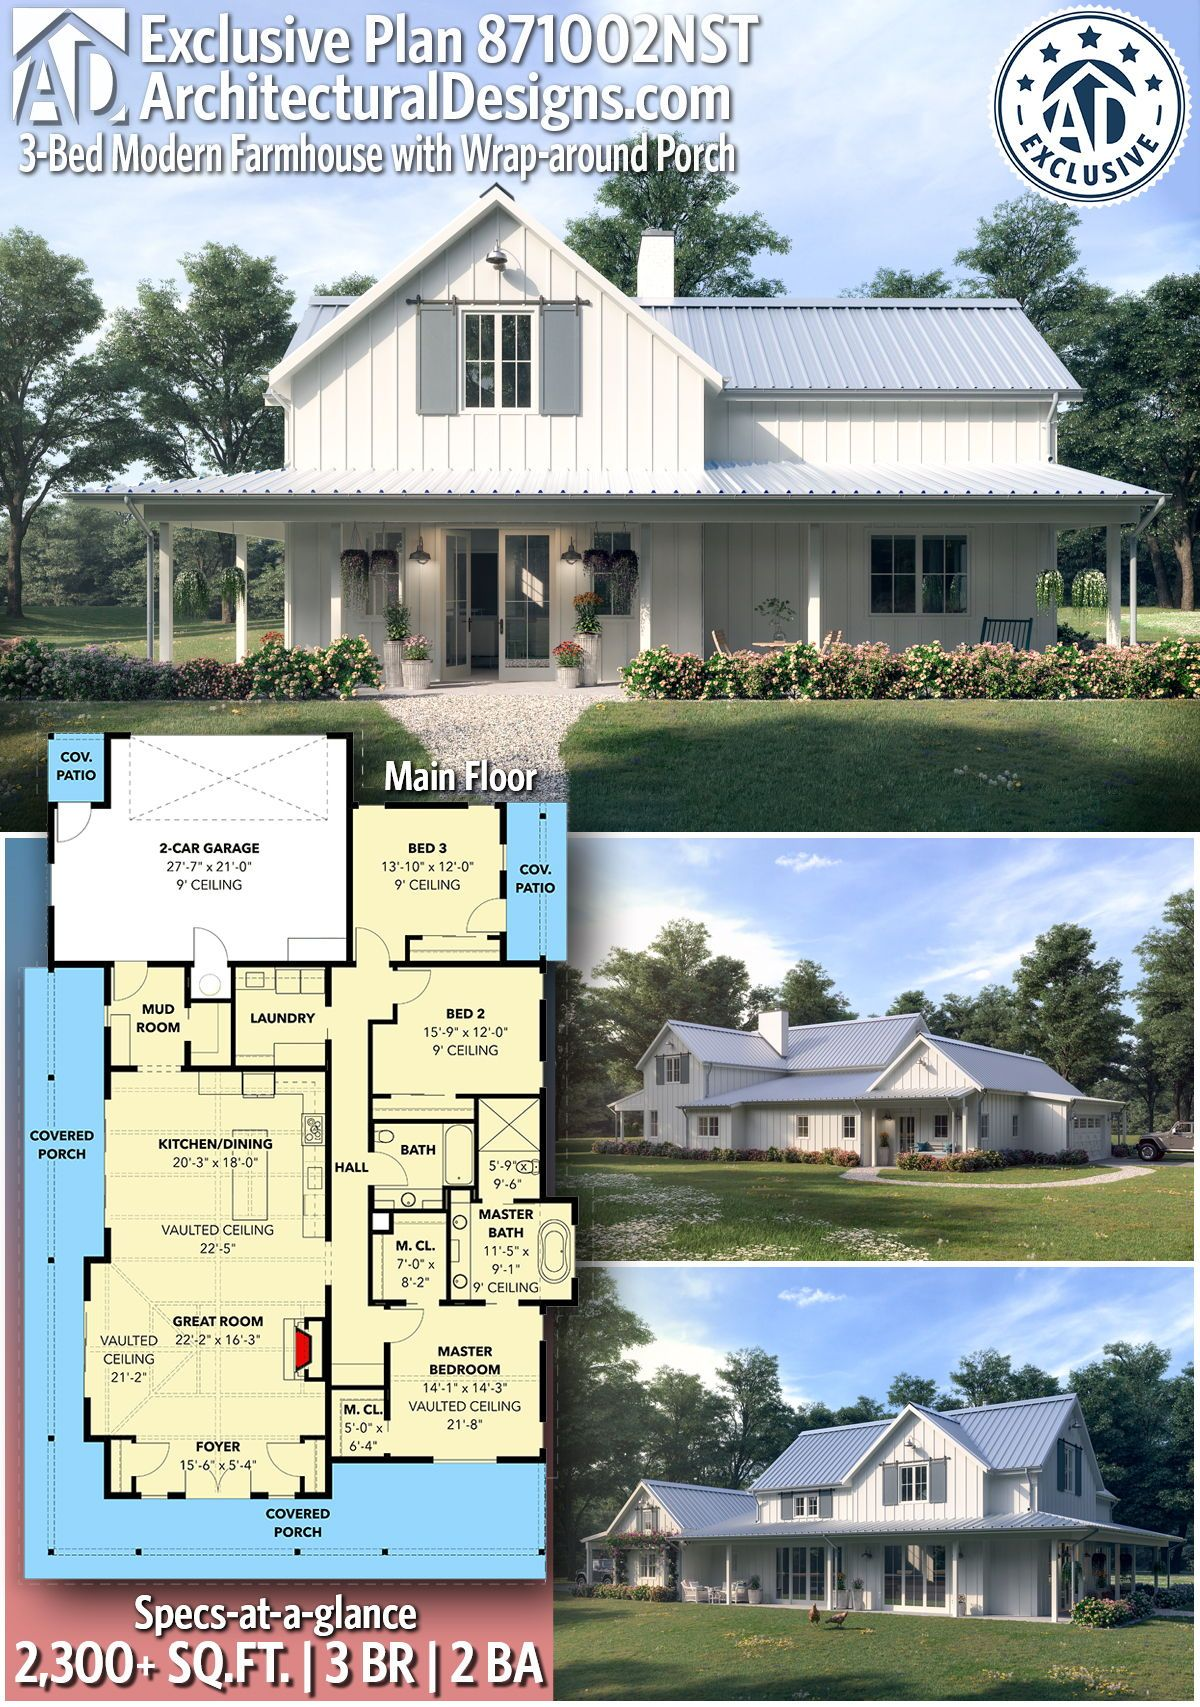 Single Story House Plans With Wrap Around Porch House Plan Shocking Lovely One Story House Wrap Aroun Porch House Plans House Plans One Story Ranch House Plans